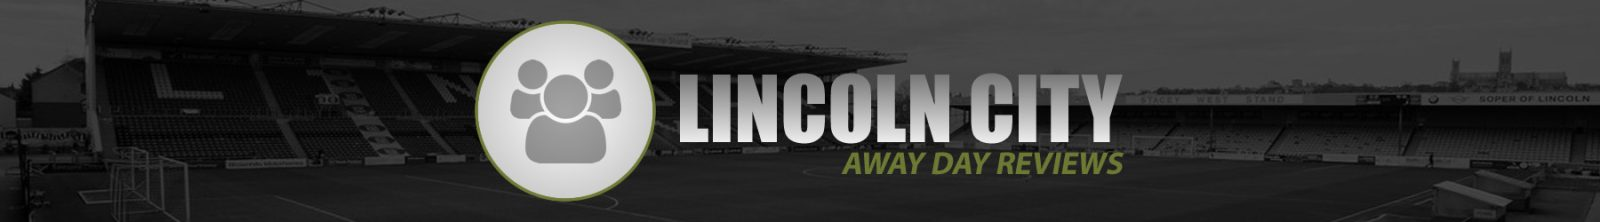 Review Lincoln City